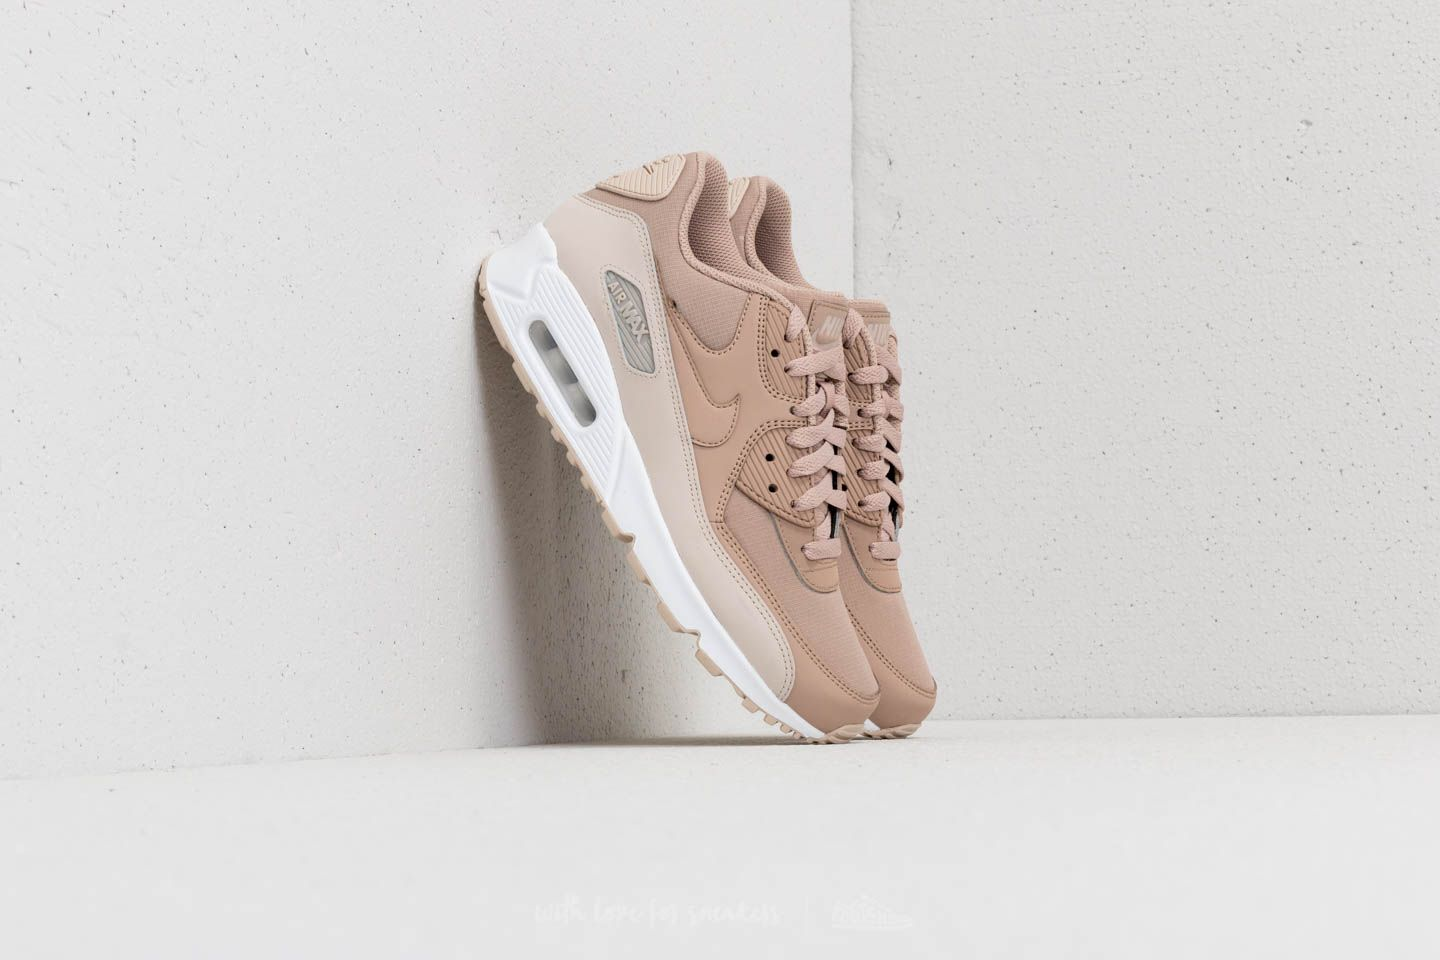 best sneakers 2ec83 0796a Nike Air Max 90 Essential. Desert Sand  Sand-White